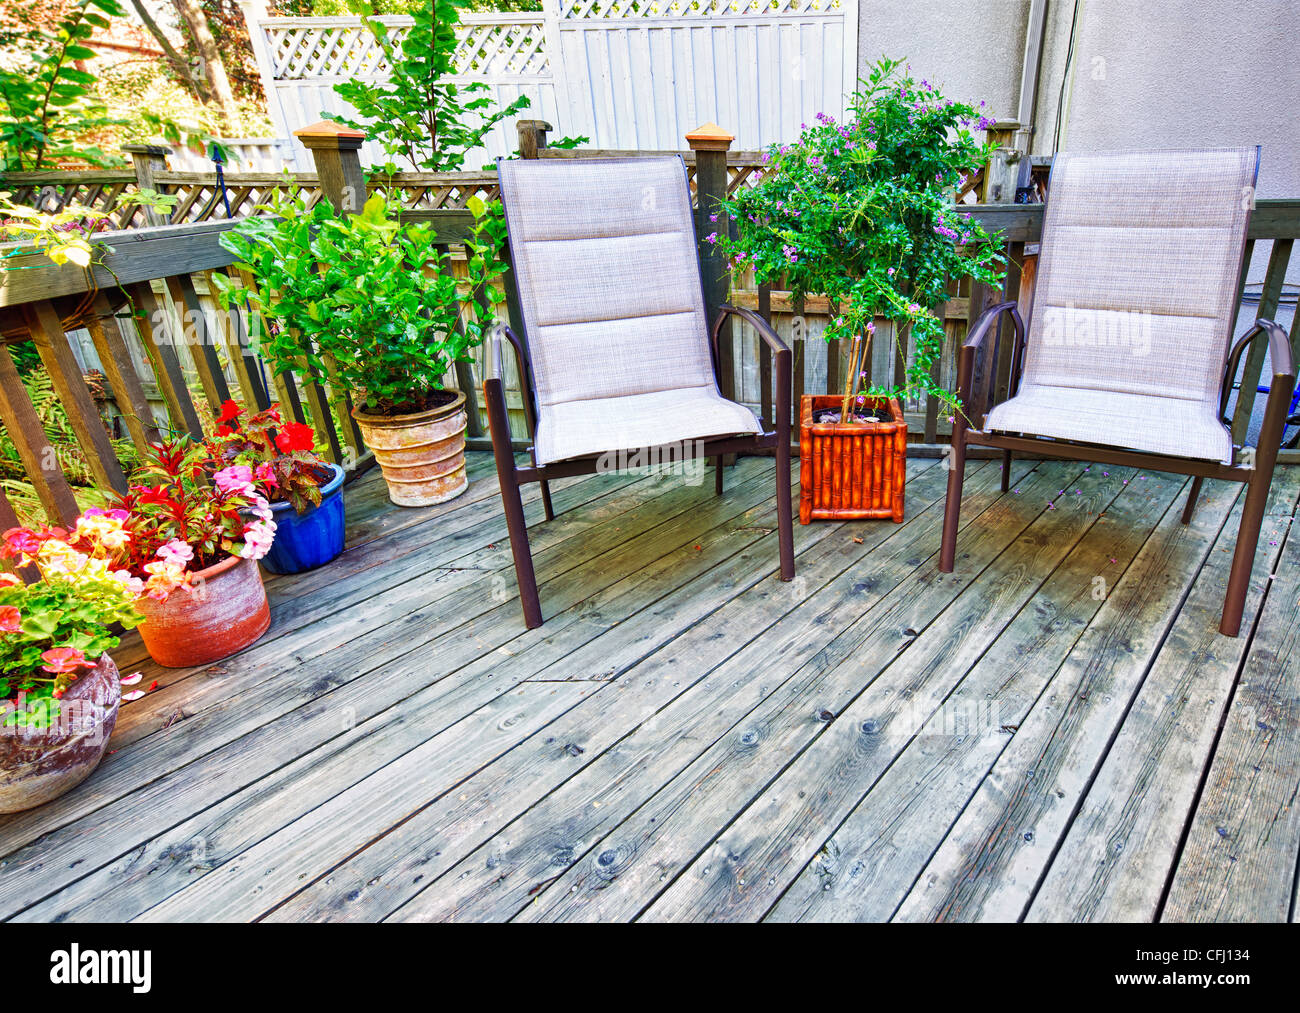 Chairs and plants on wooden deck in backyard of home Stock Photo